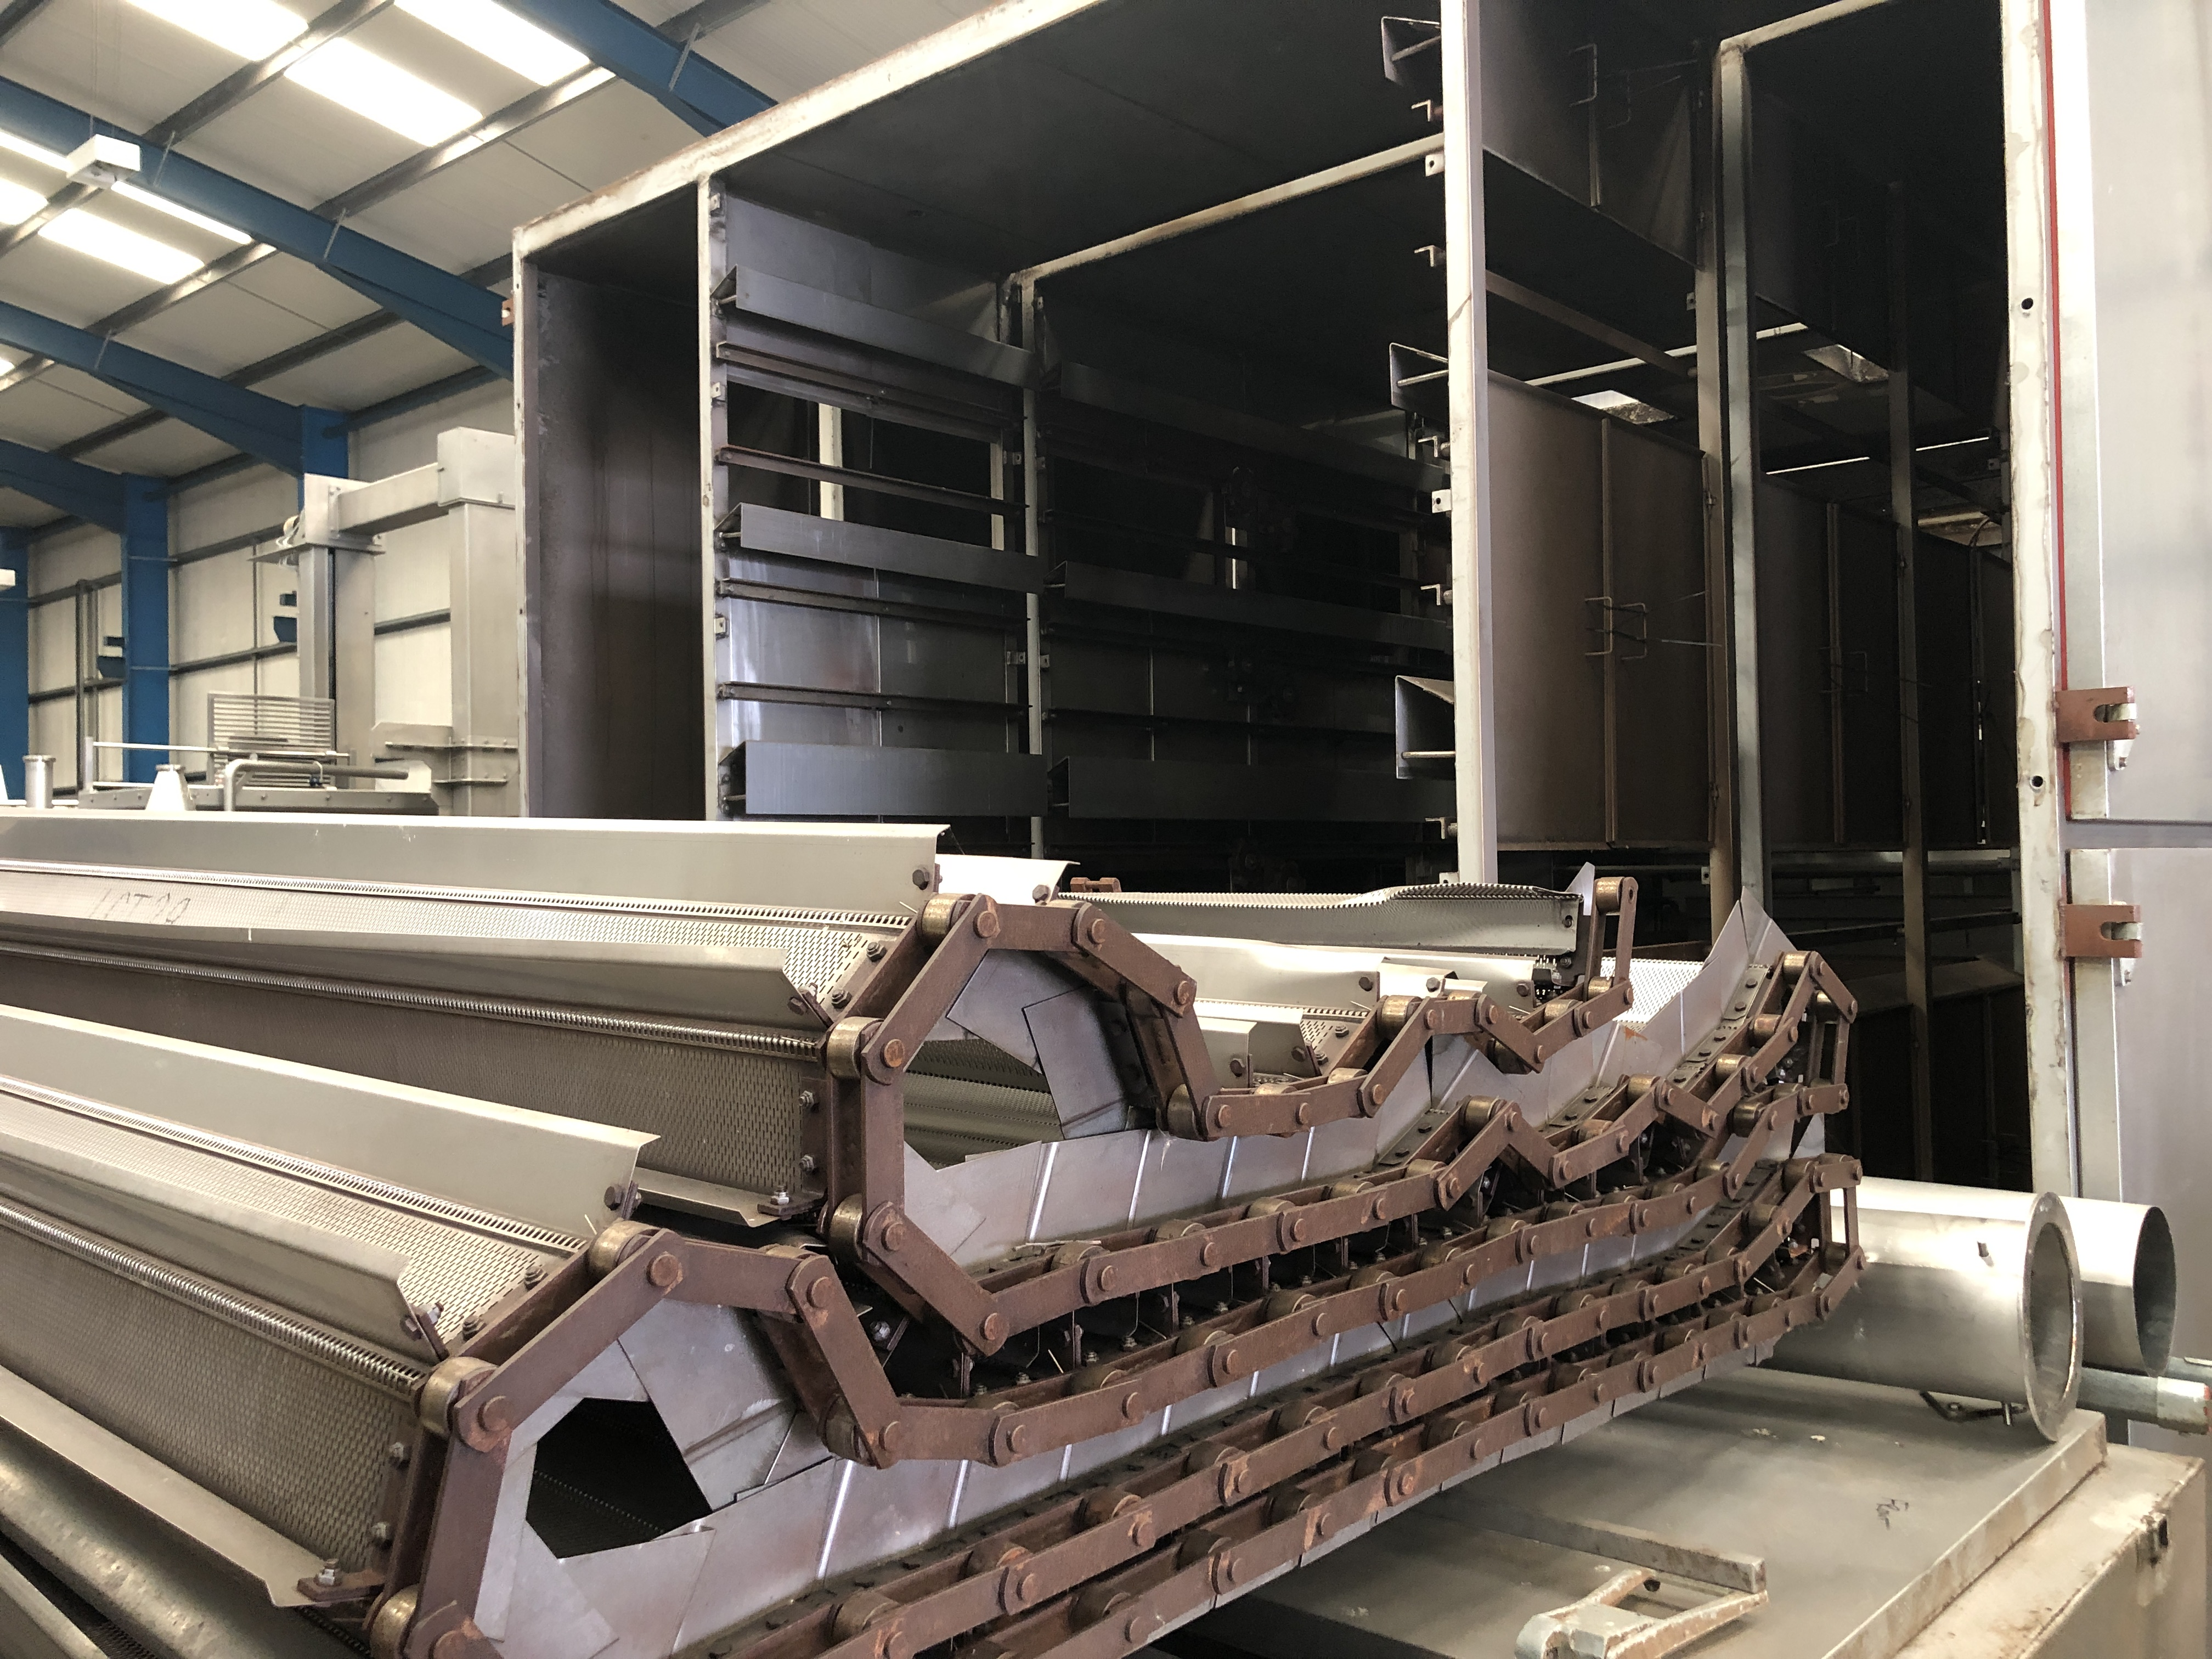 Proctor FIVE PASS GAS FIRED DRYER (dismantled by Blackrow Engineering), approx. 15m long x 5m wide x - Image 3 of 7